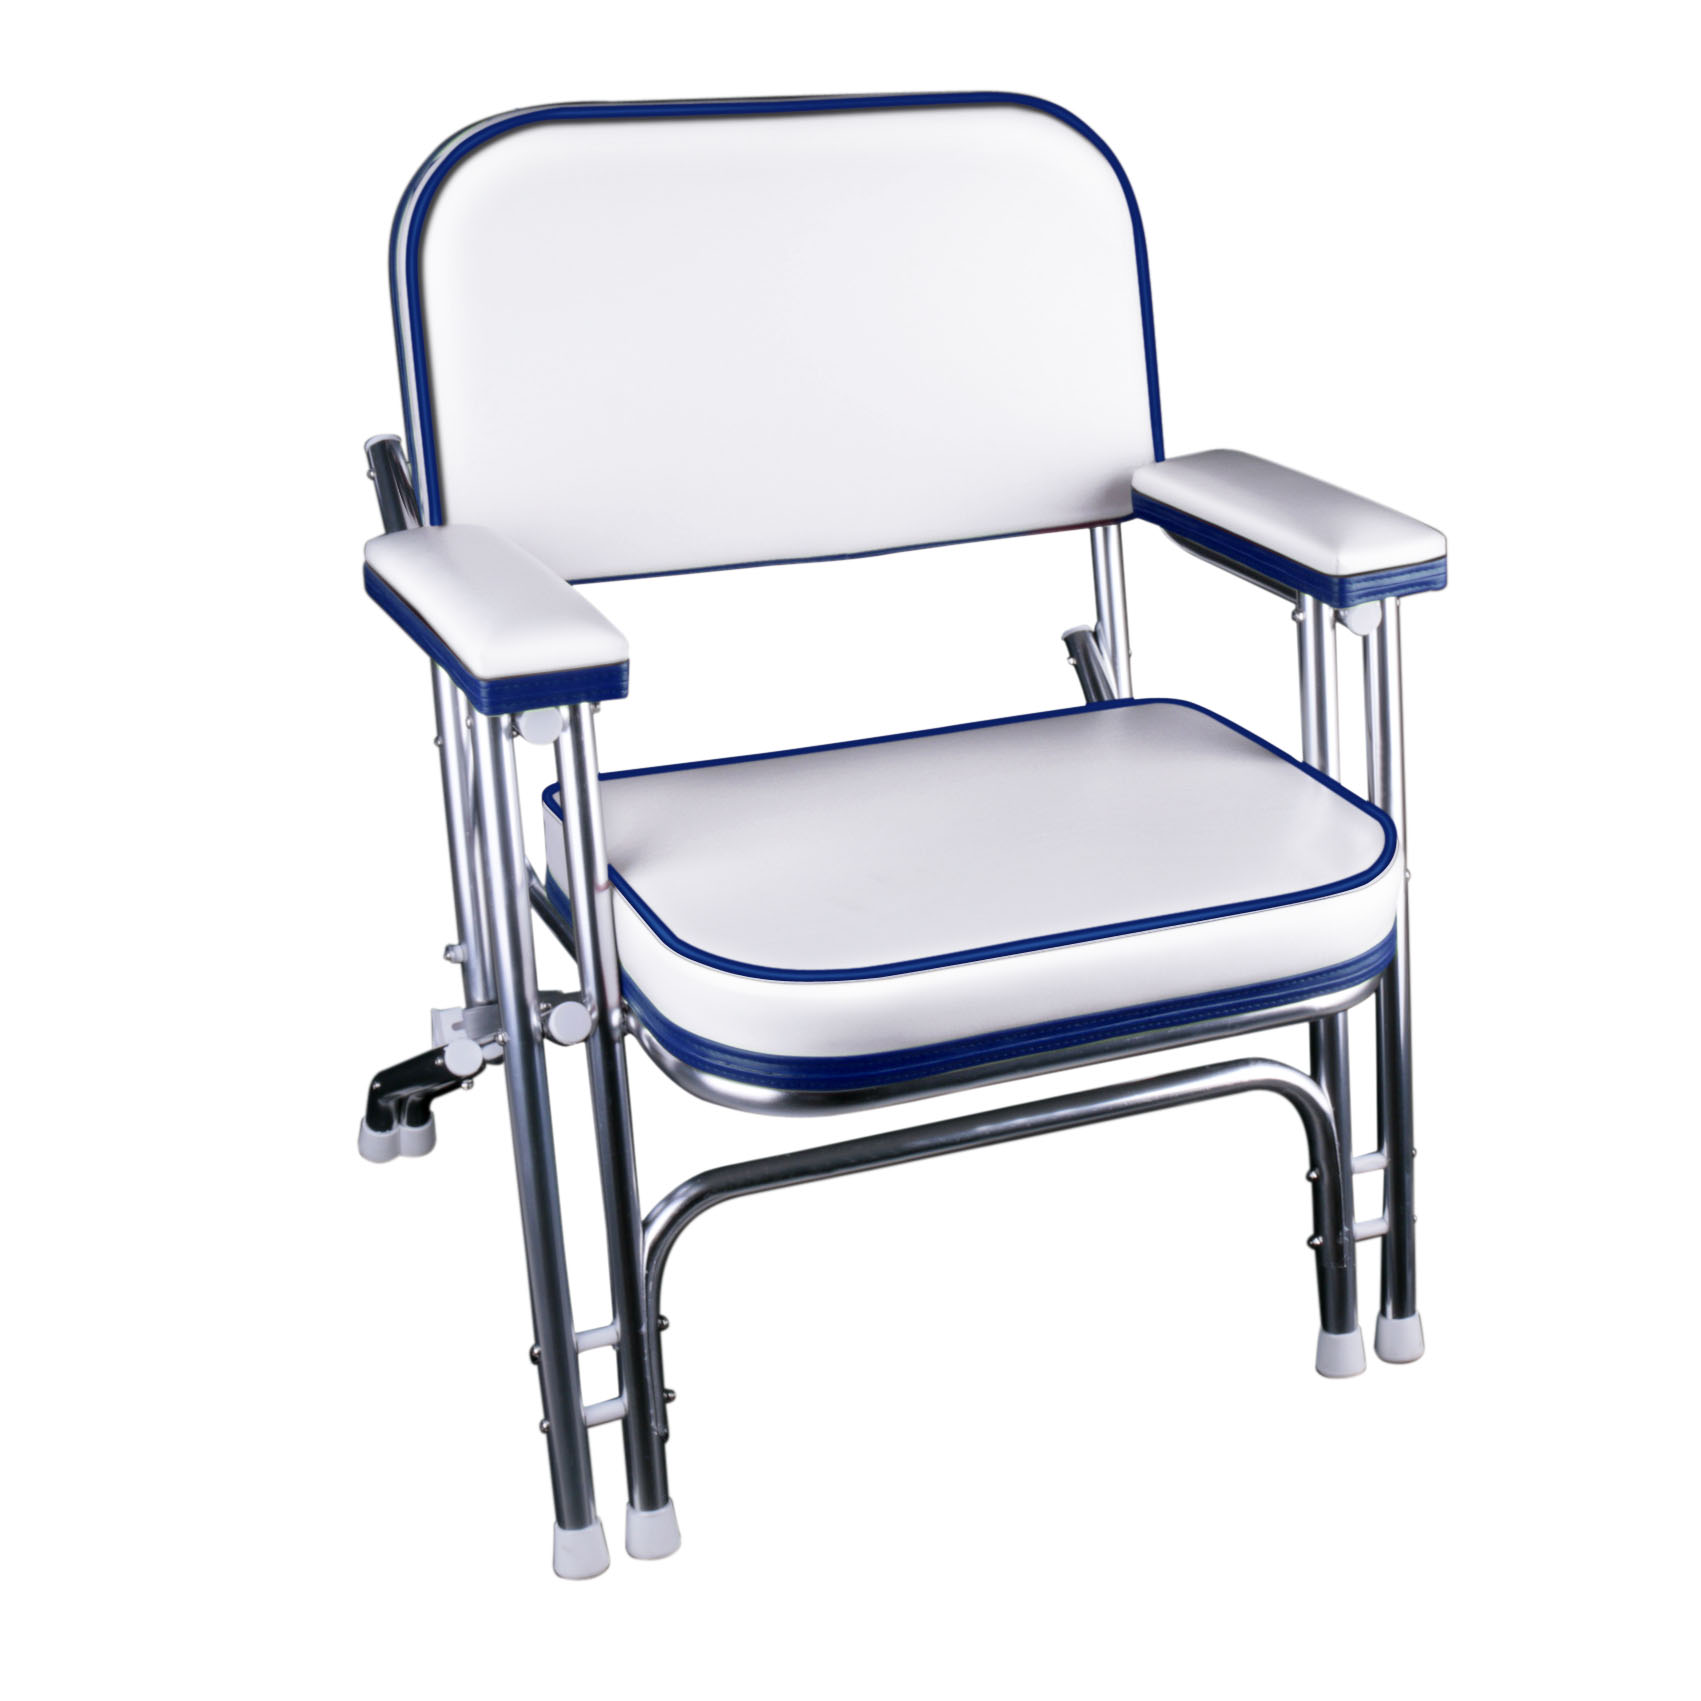 Leader Accessories Folding Deck Chair with Aluminum frame, armrests,Portable